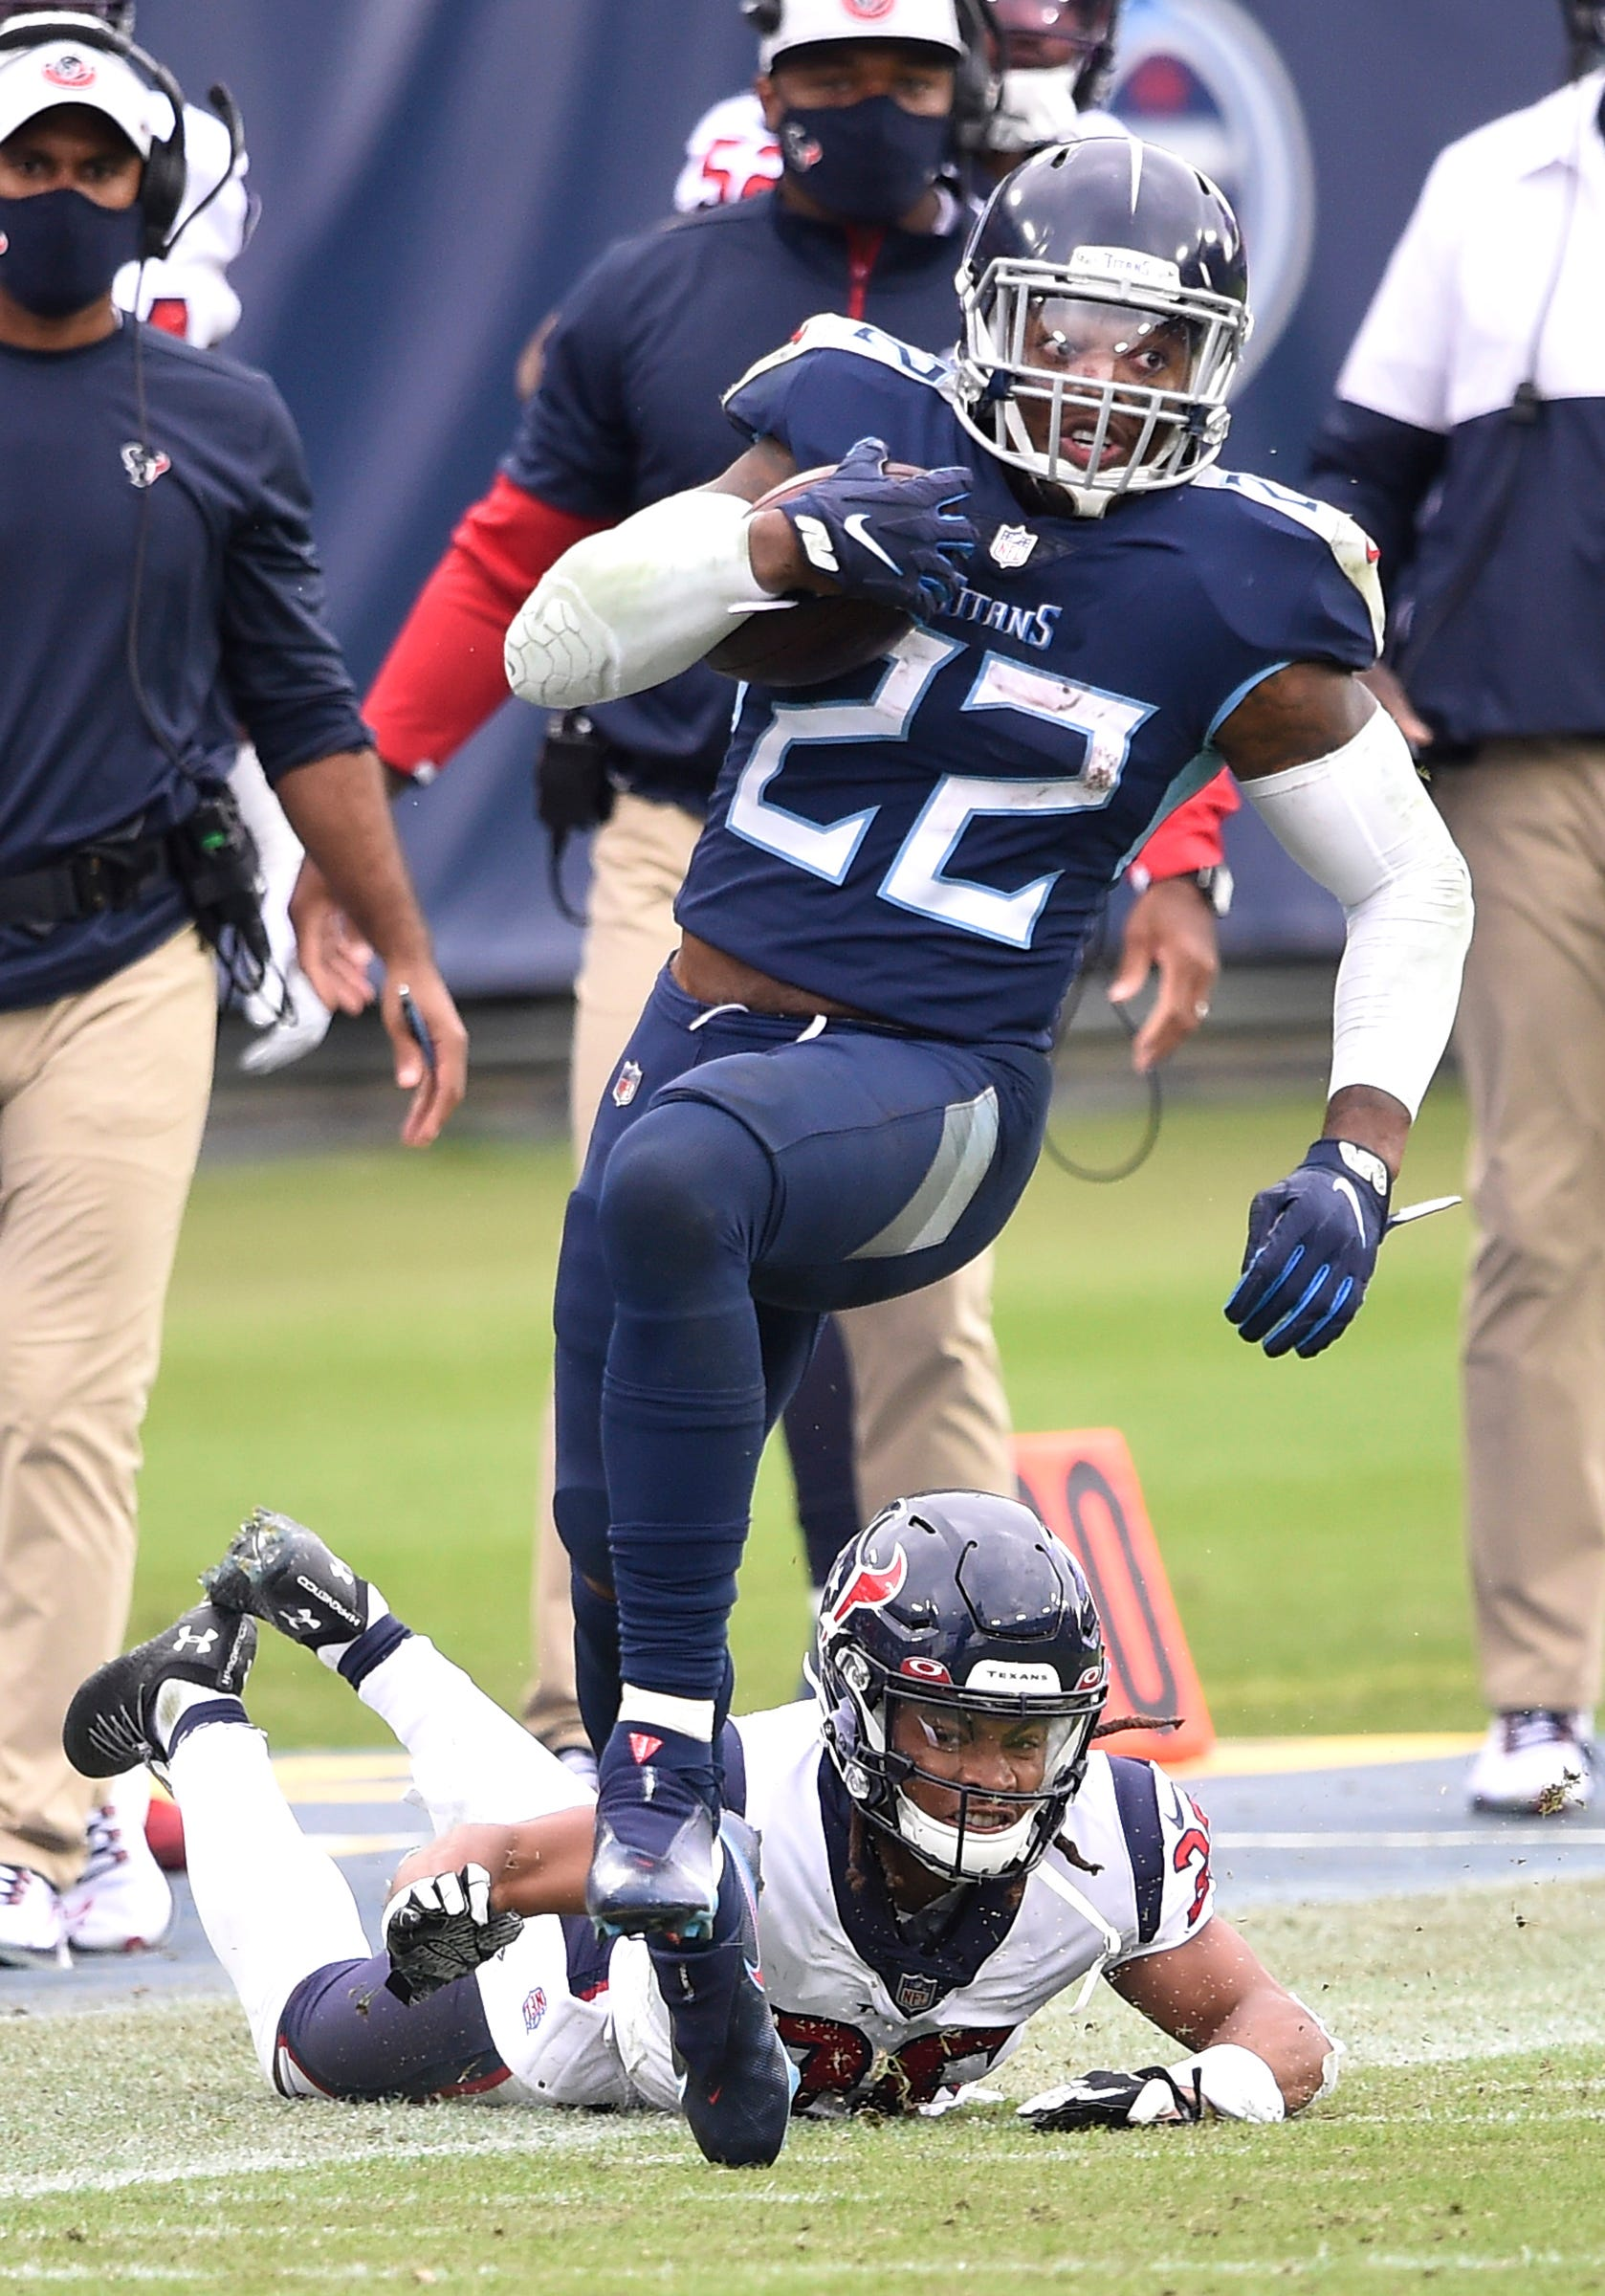 Titans RB Derrick Henry an NFL throwback who knows 'it can be here today and gone tomorrow'